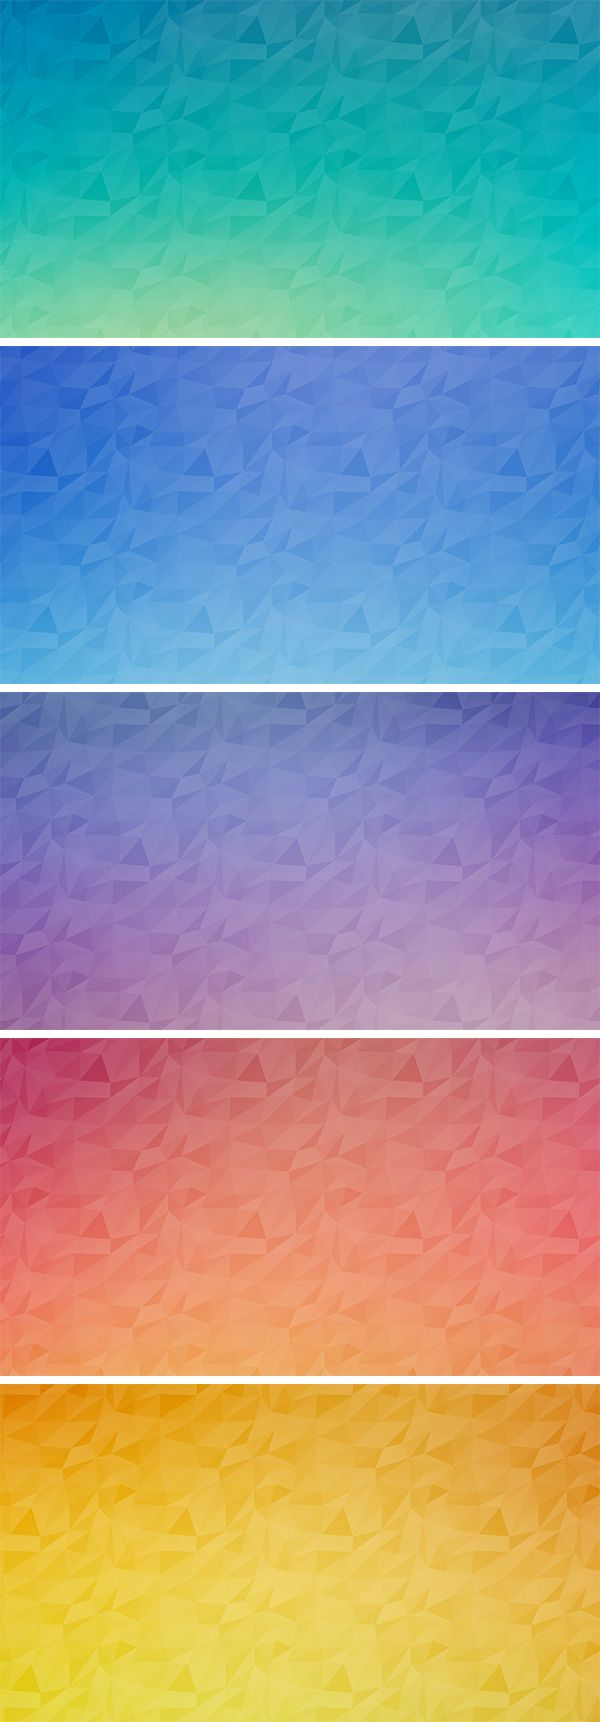 Seamless Polygon Backgrounds